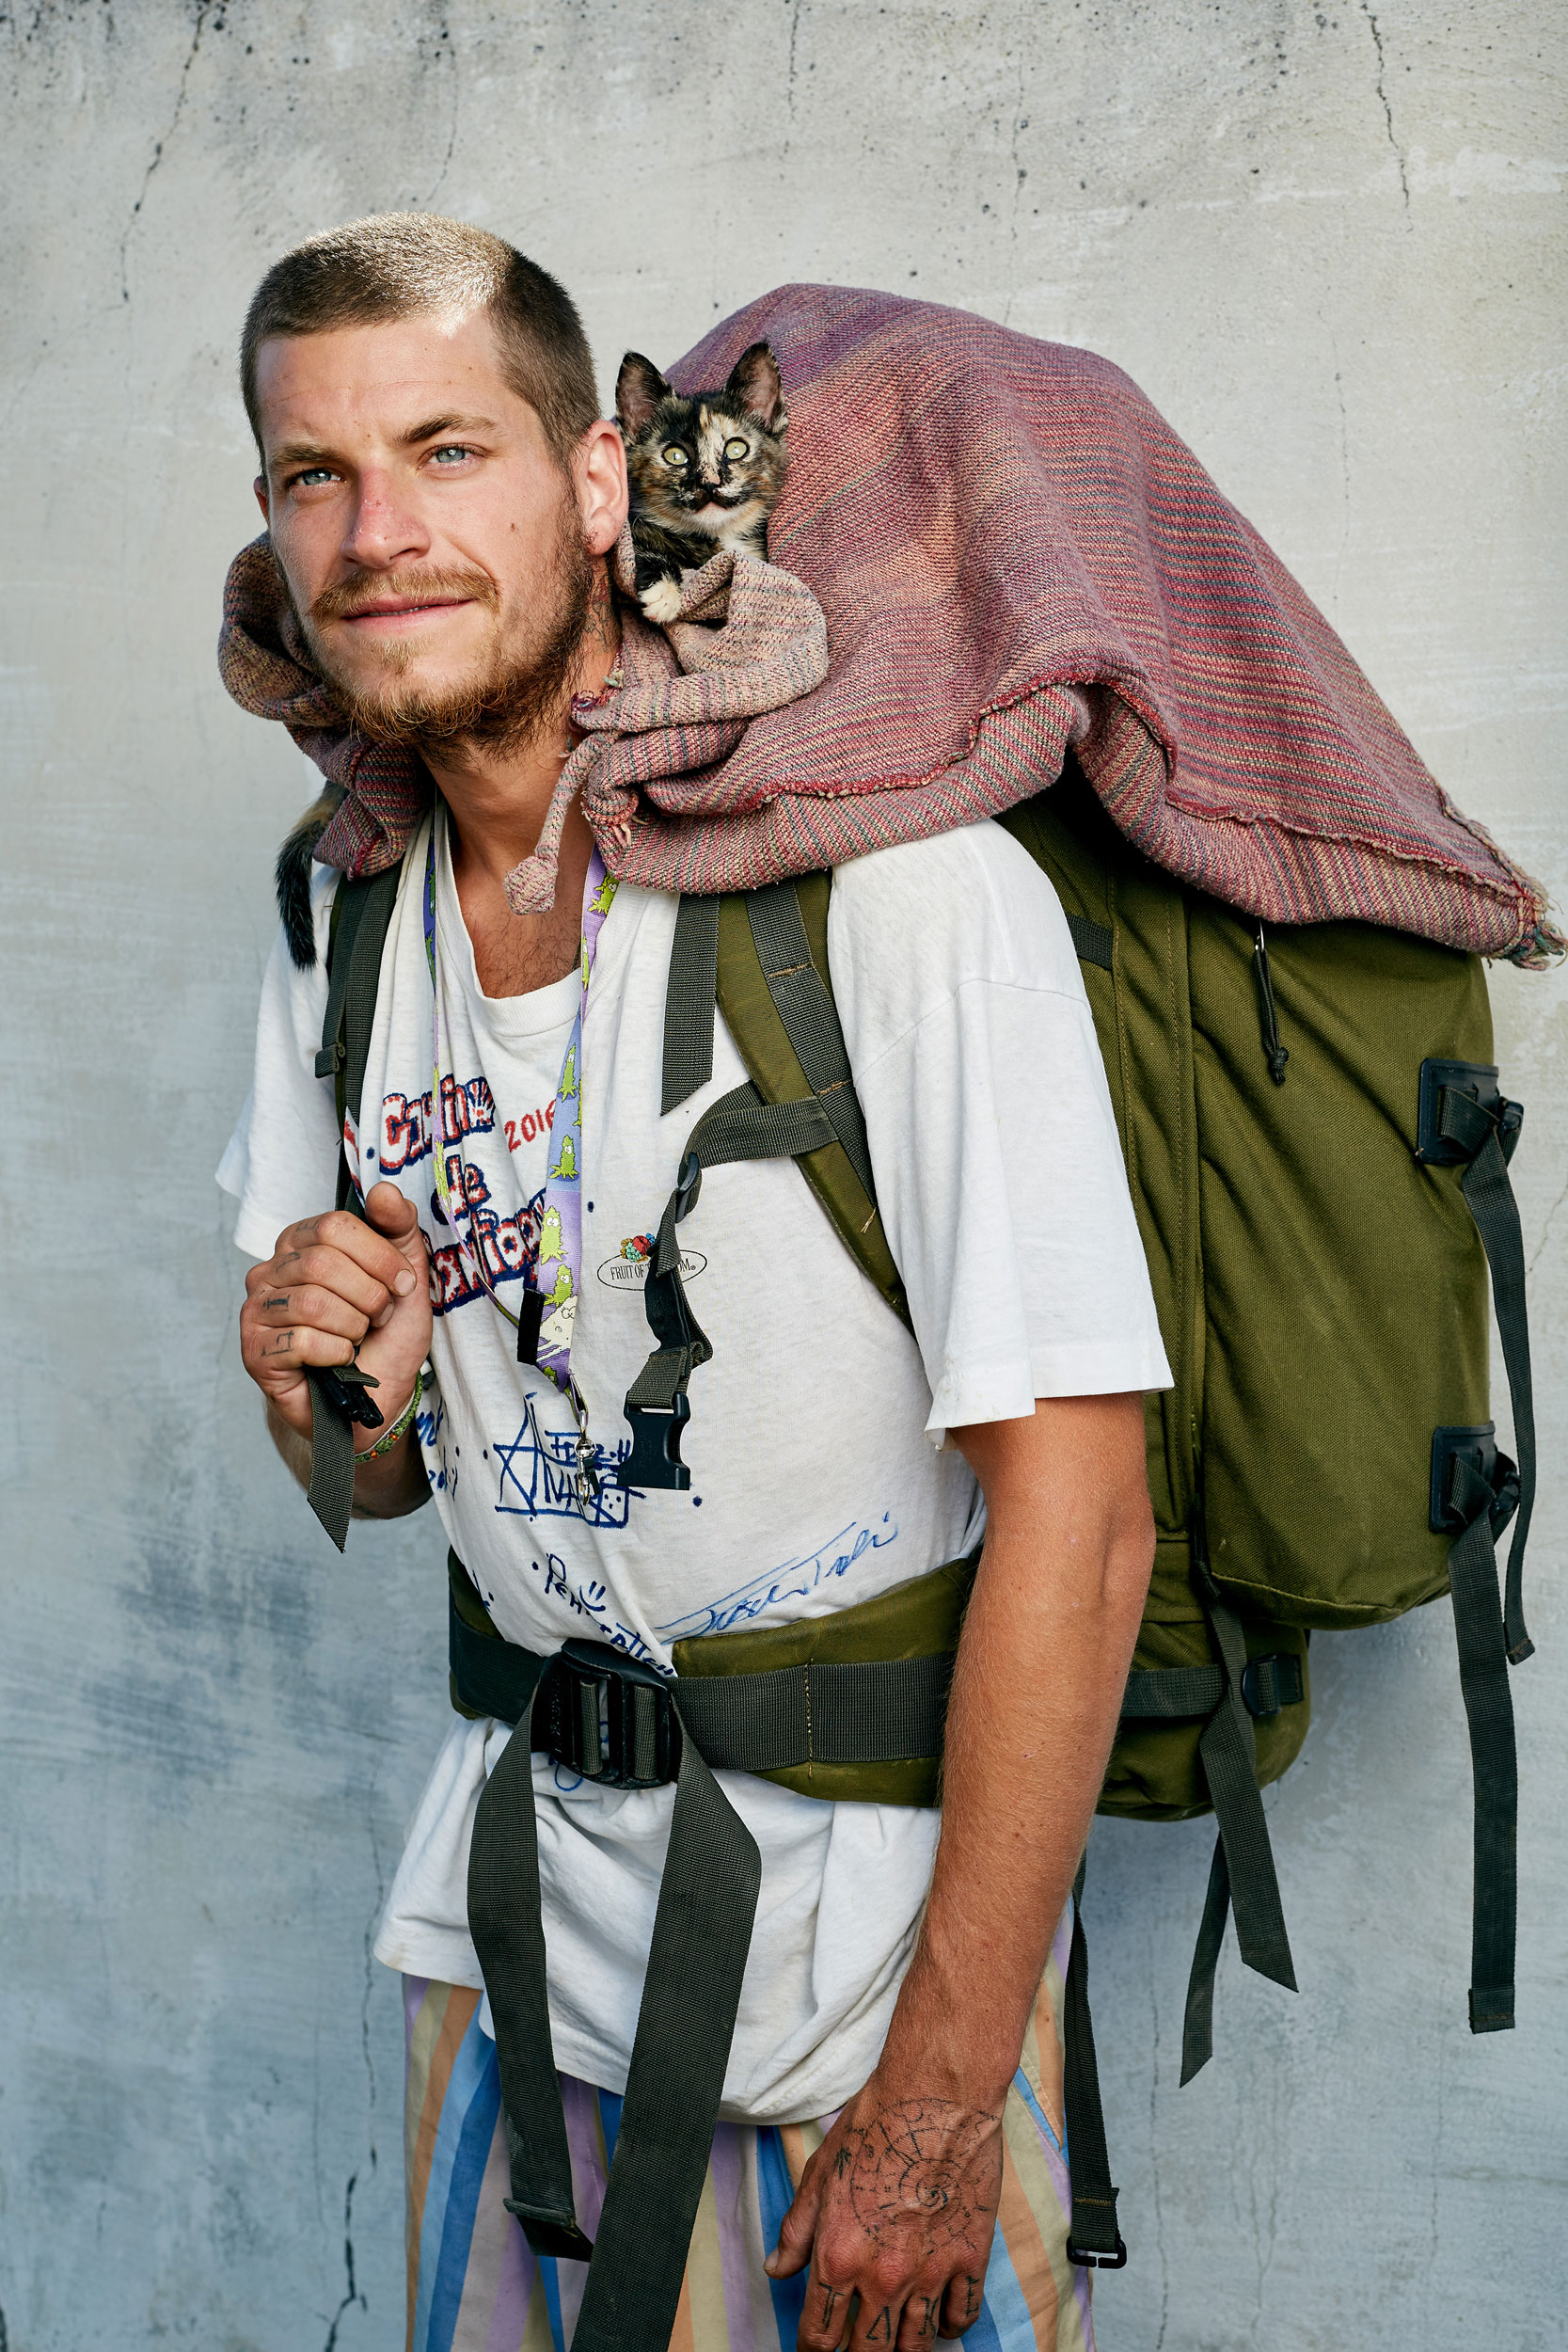 Camino pilgrim with a large rucksack and a kitten sat on his shoulders by documentary portrait photographer Duncan Elliott